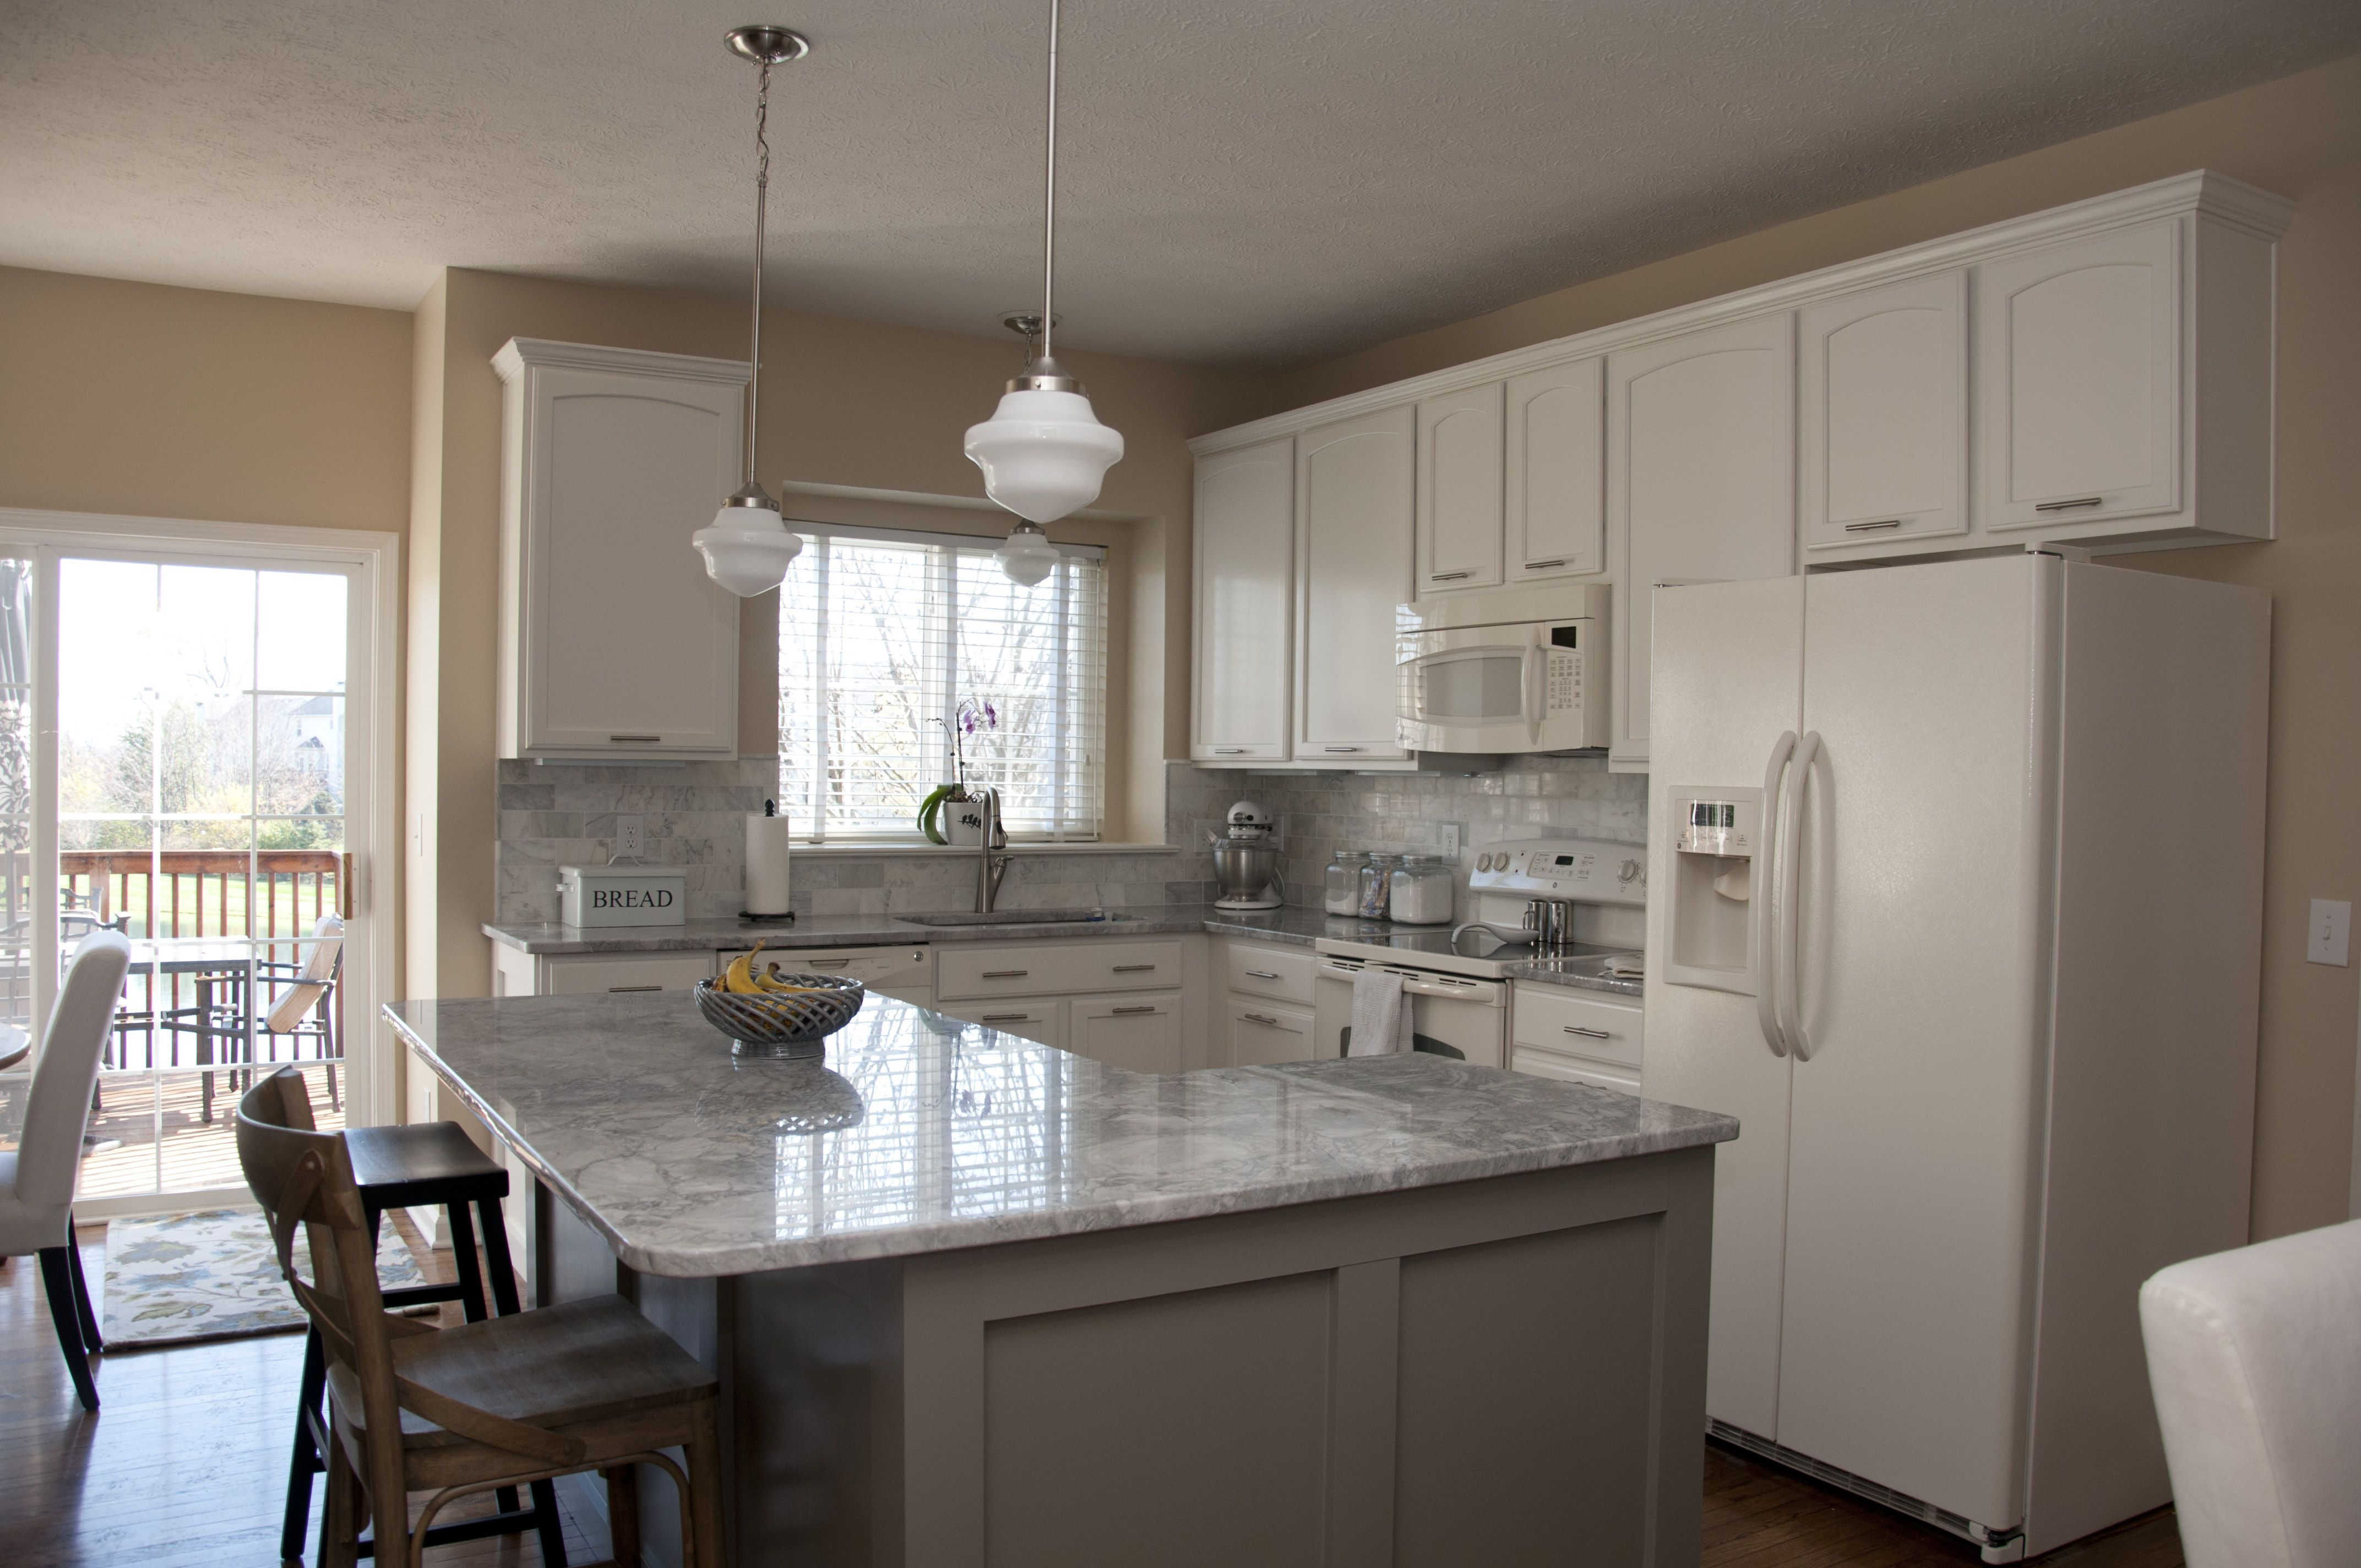 Behr Kitchen Cabinet Paint painted cabinets, replaced countertops, backsplash & fixtures